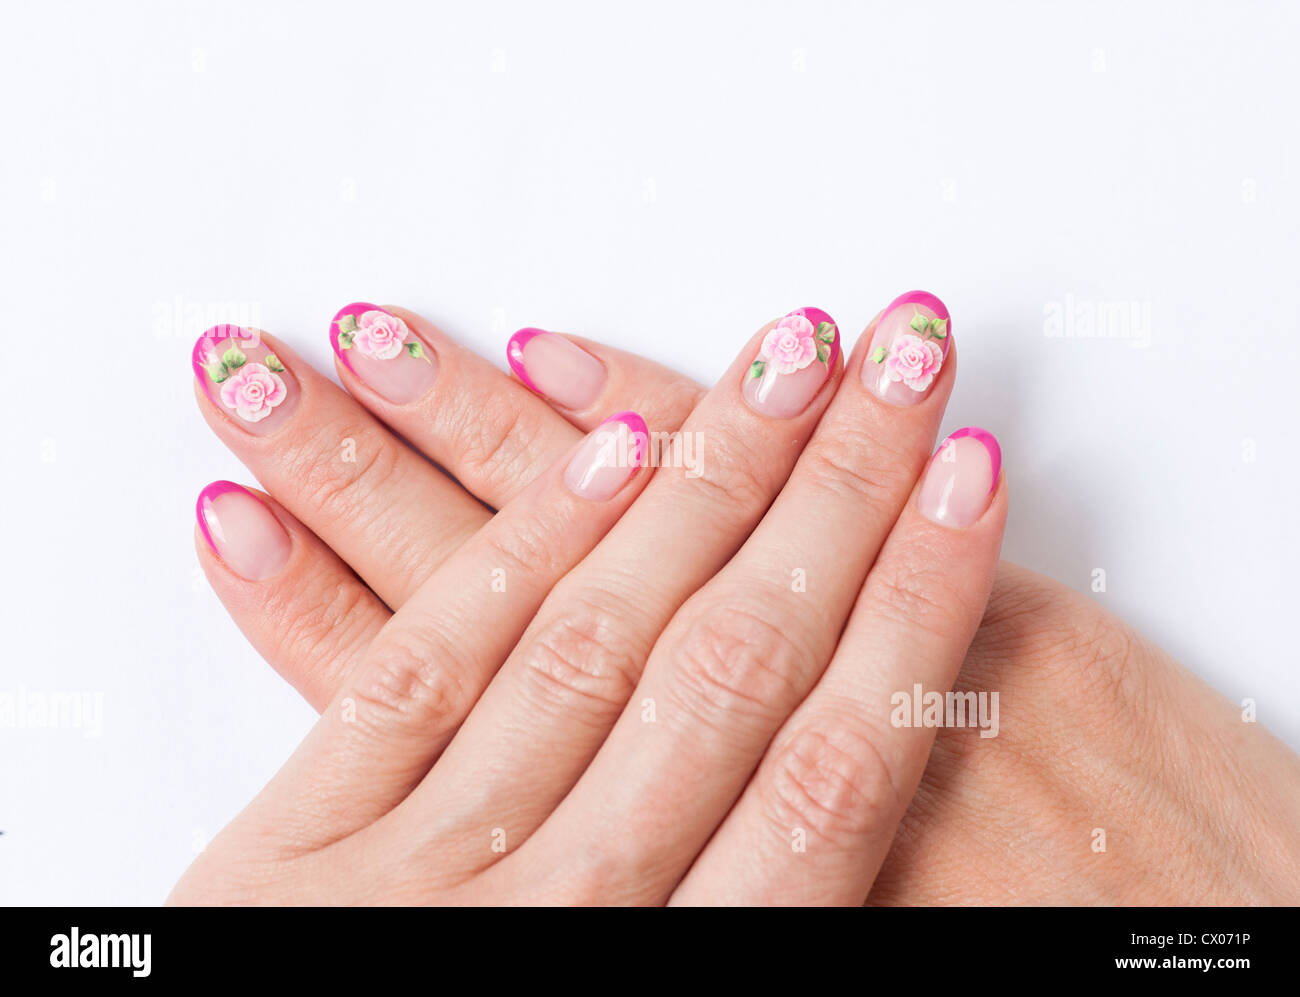 Manicured nails with nail art Stock Photo: 50407330 - Alamy